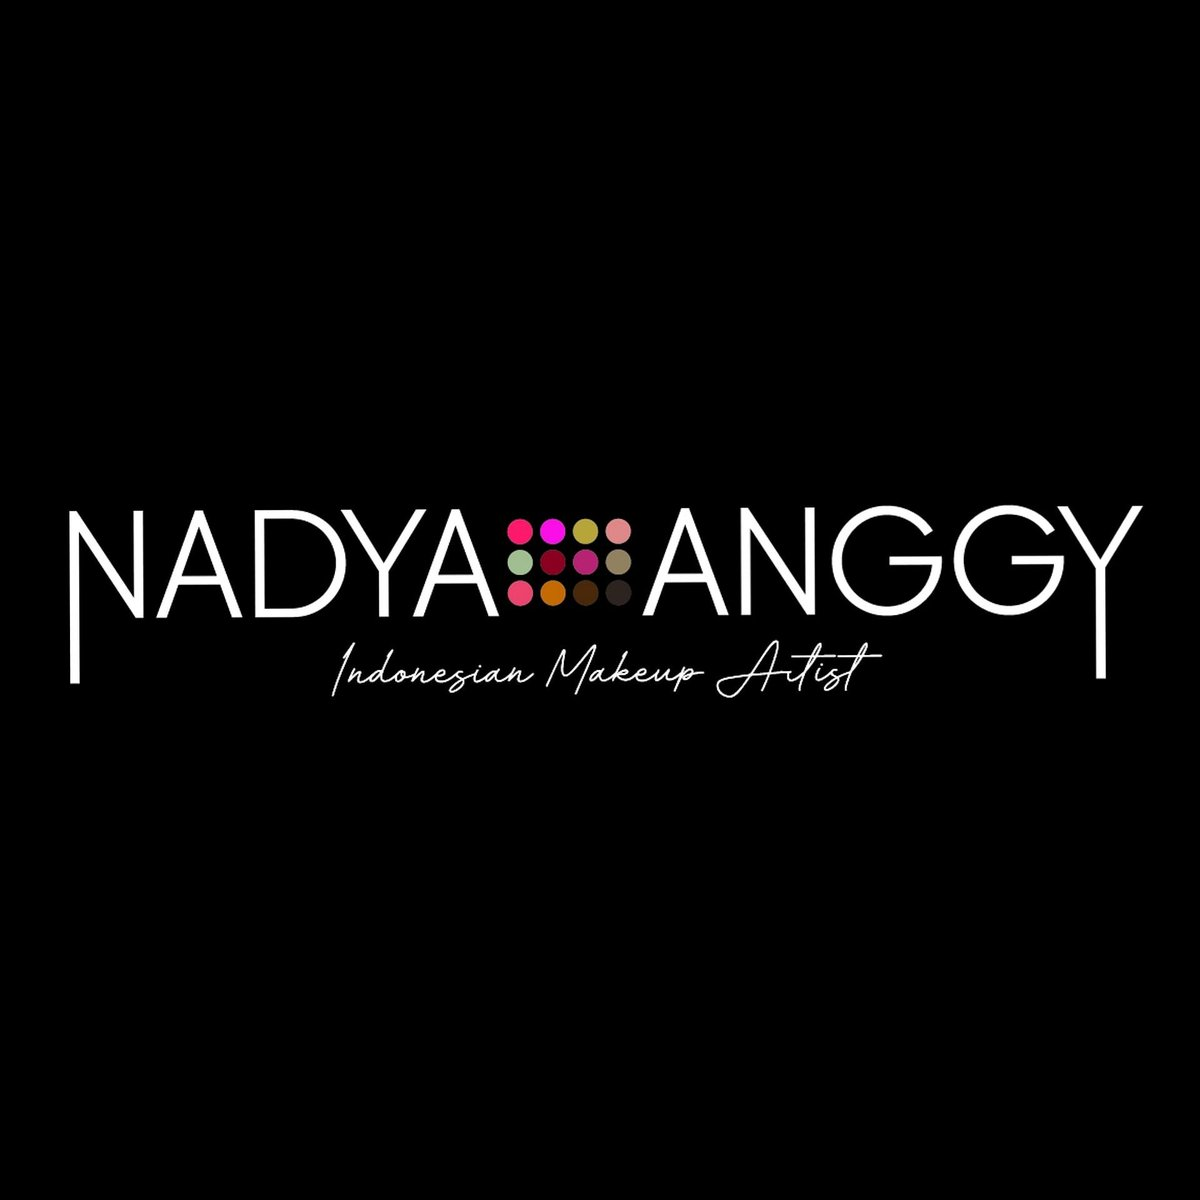 FOLLOW my business instagram account : http://instagram.com/nadyaanggymakeup …